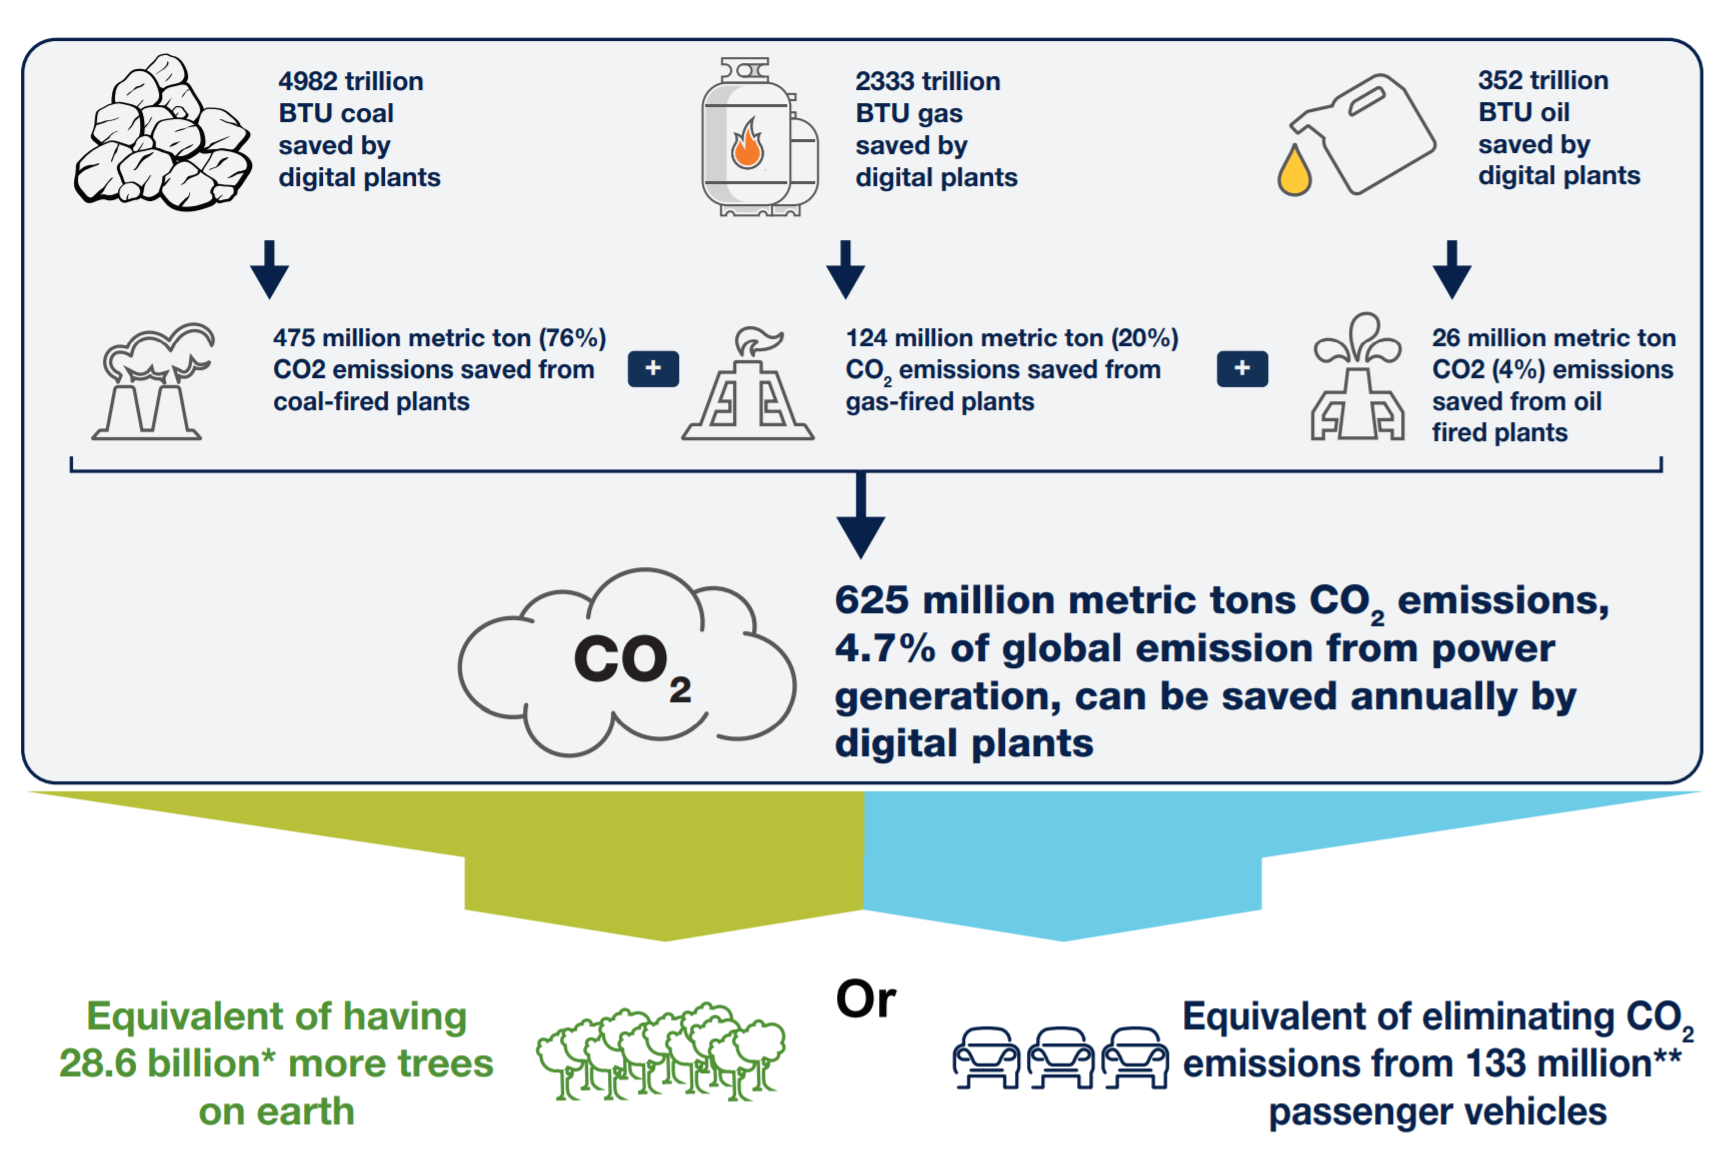 Capgemini digitized power plants carbon emissions